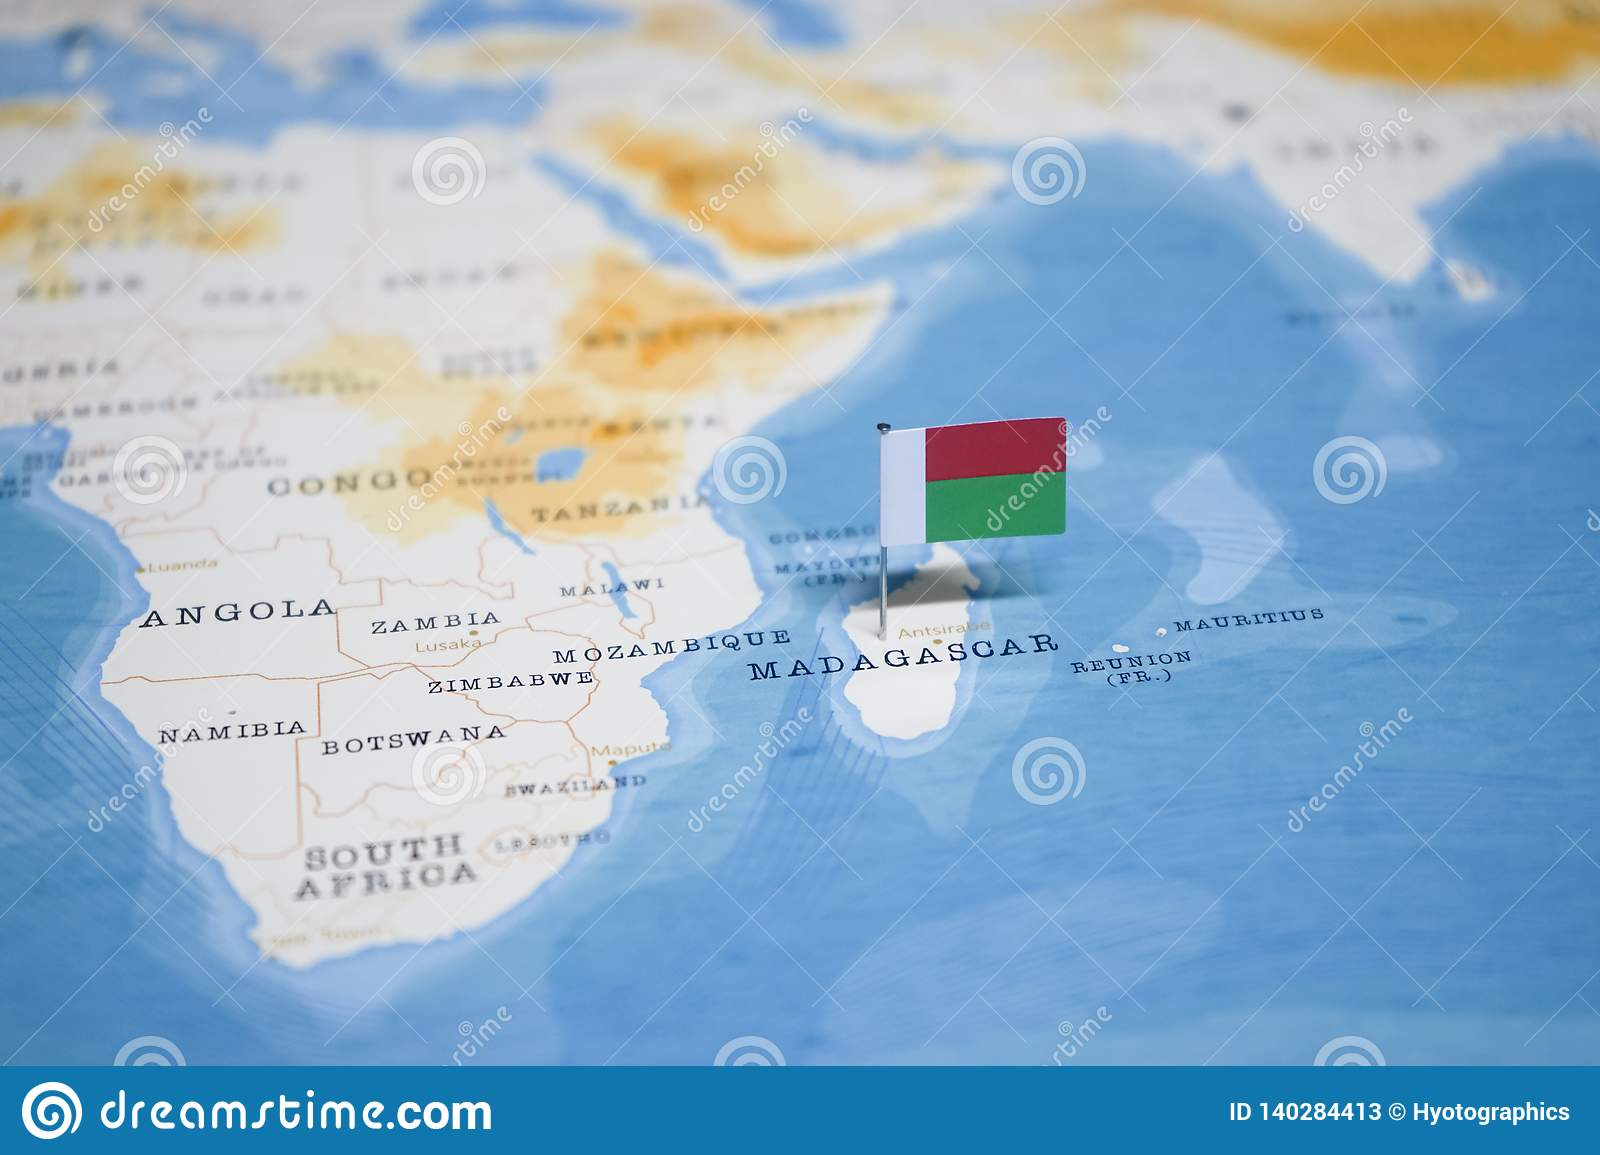 The Flag Of Madagascar In The World Map Stock Image - Image ...